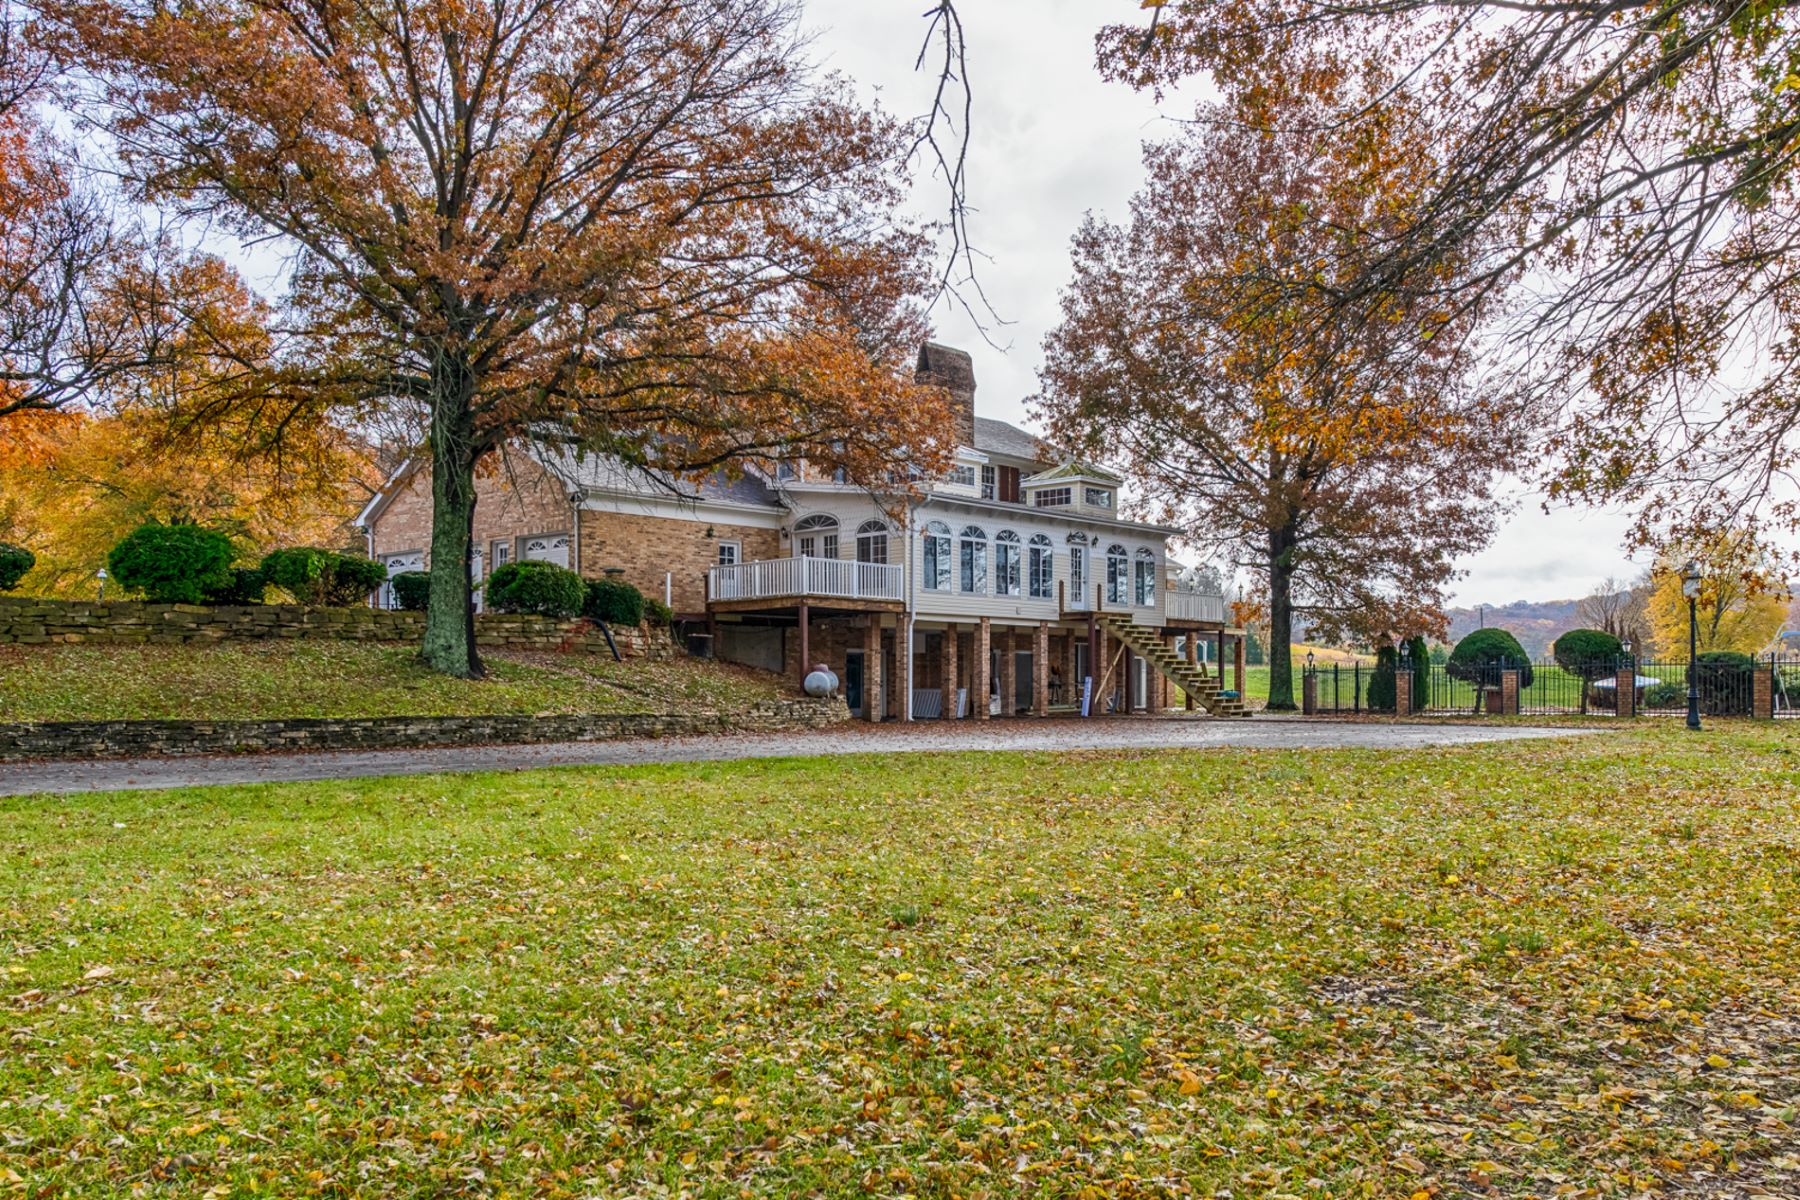 Additional photo for property listing at Wild Plum Valley 2919 Wild Plum Valley Robertsville, Missouri 63072 United States